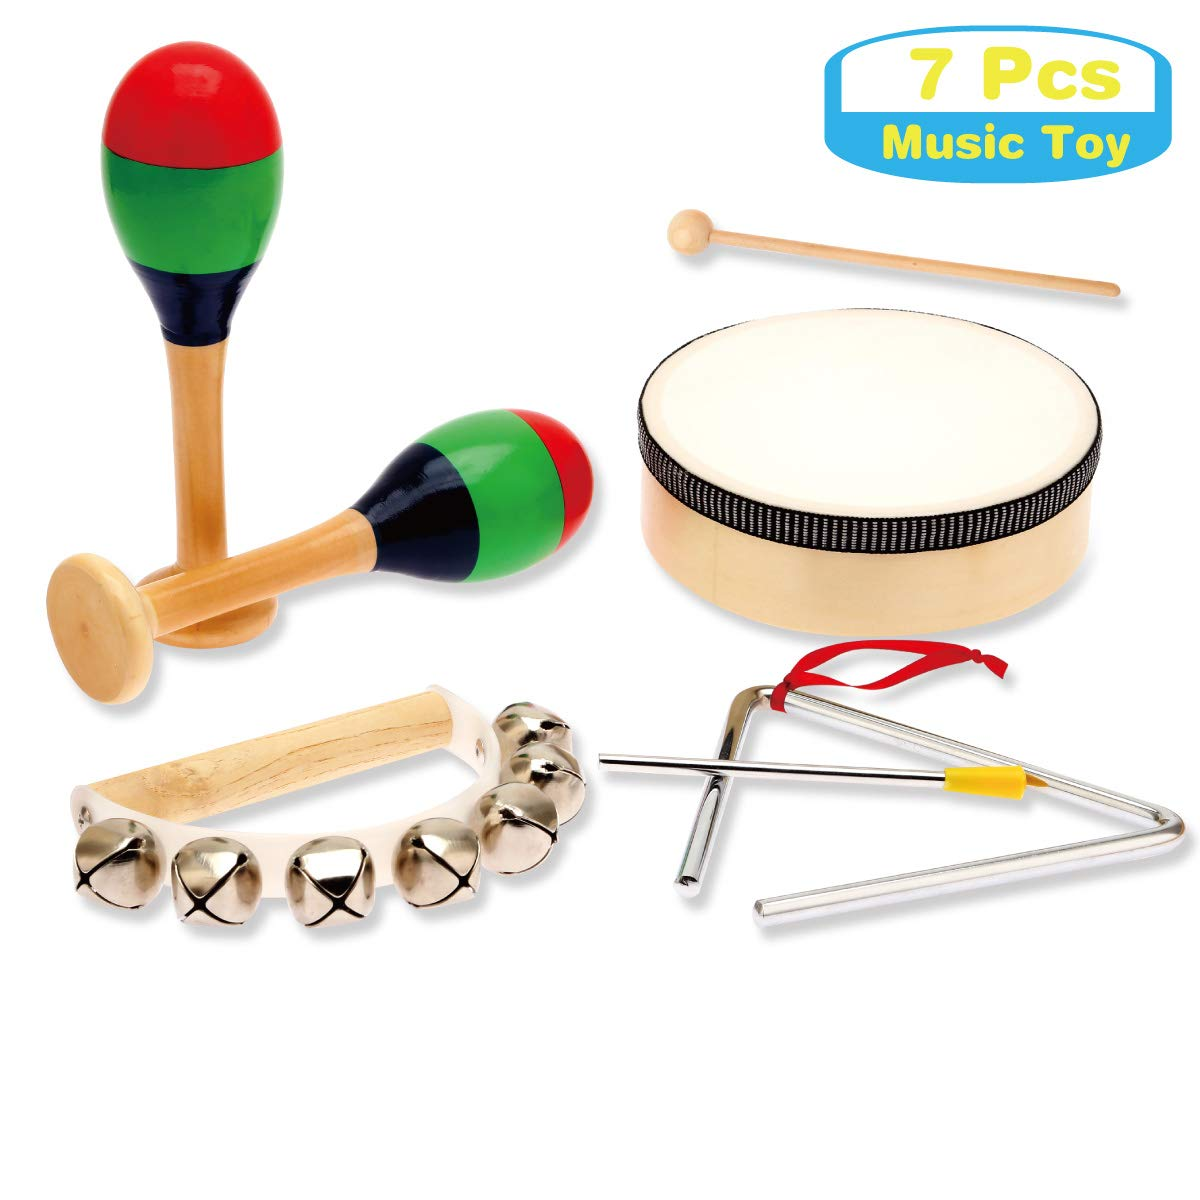 LEGO Drum Kit Inc Drums NEW Drumsticks /& Seat Symbol Microphone Bass Drum